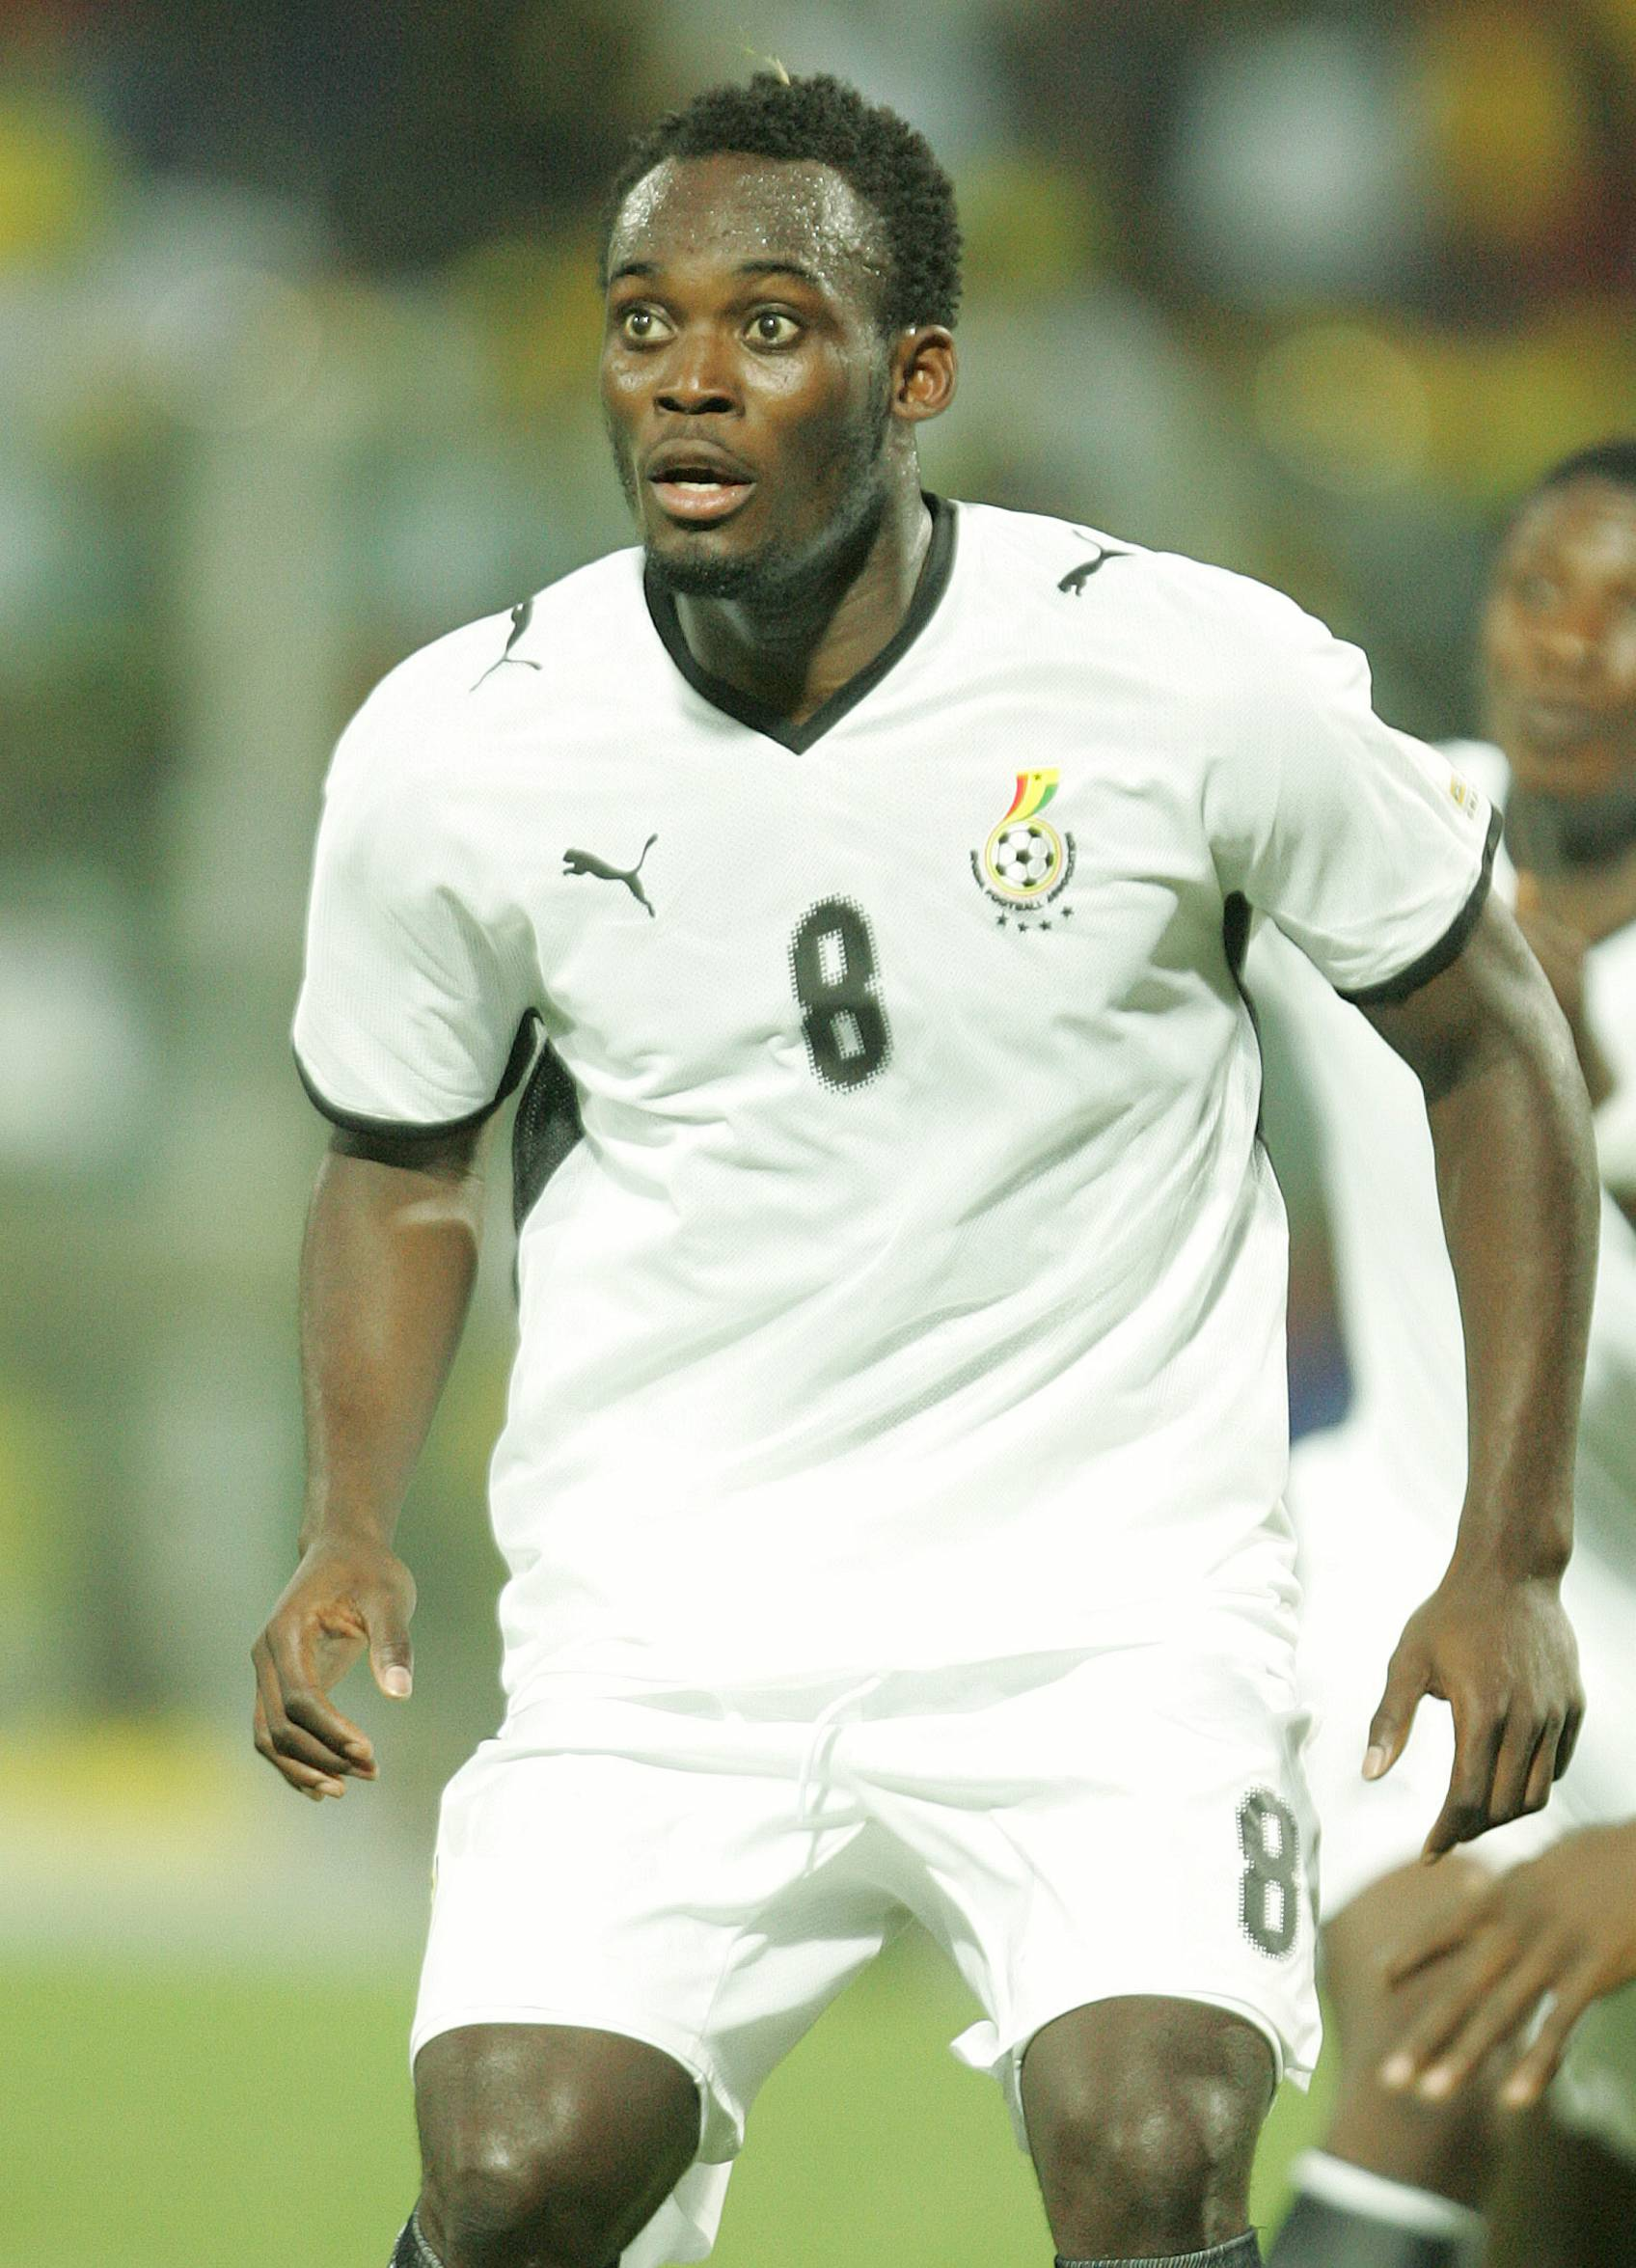 ACCRA, GHANA - JANUARY 20:  Micheal Essien of Ghana in action during the African Cup of Nations Group A match between Ghana and Guinea held at the Ohene Djan Stadium on January 20, 2008 in Accra, Ghana.  (Photo by Lefty Shivambu/Gallo Images/Getty Images)